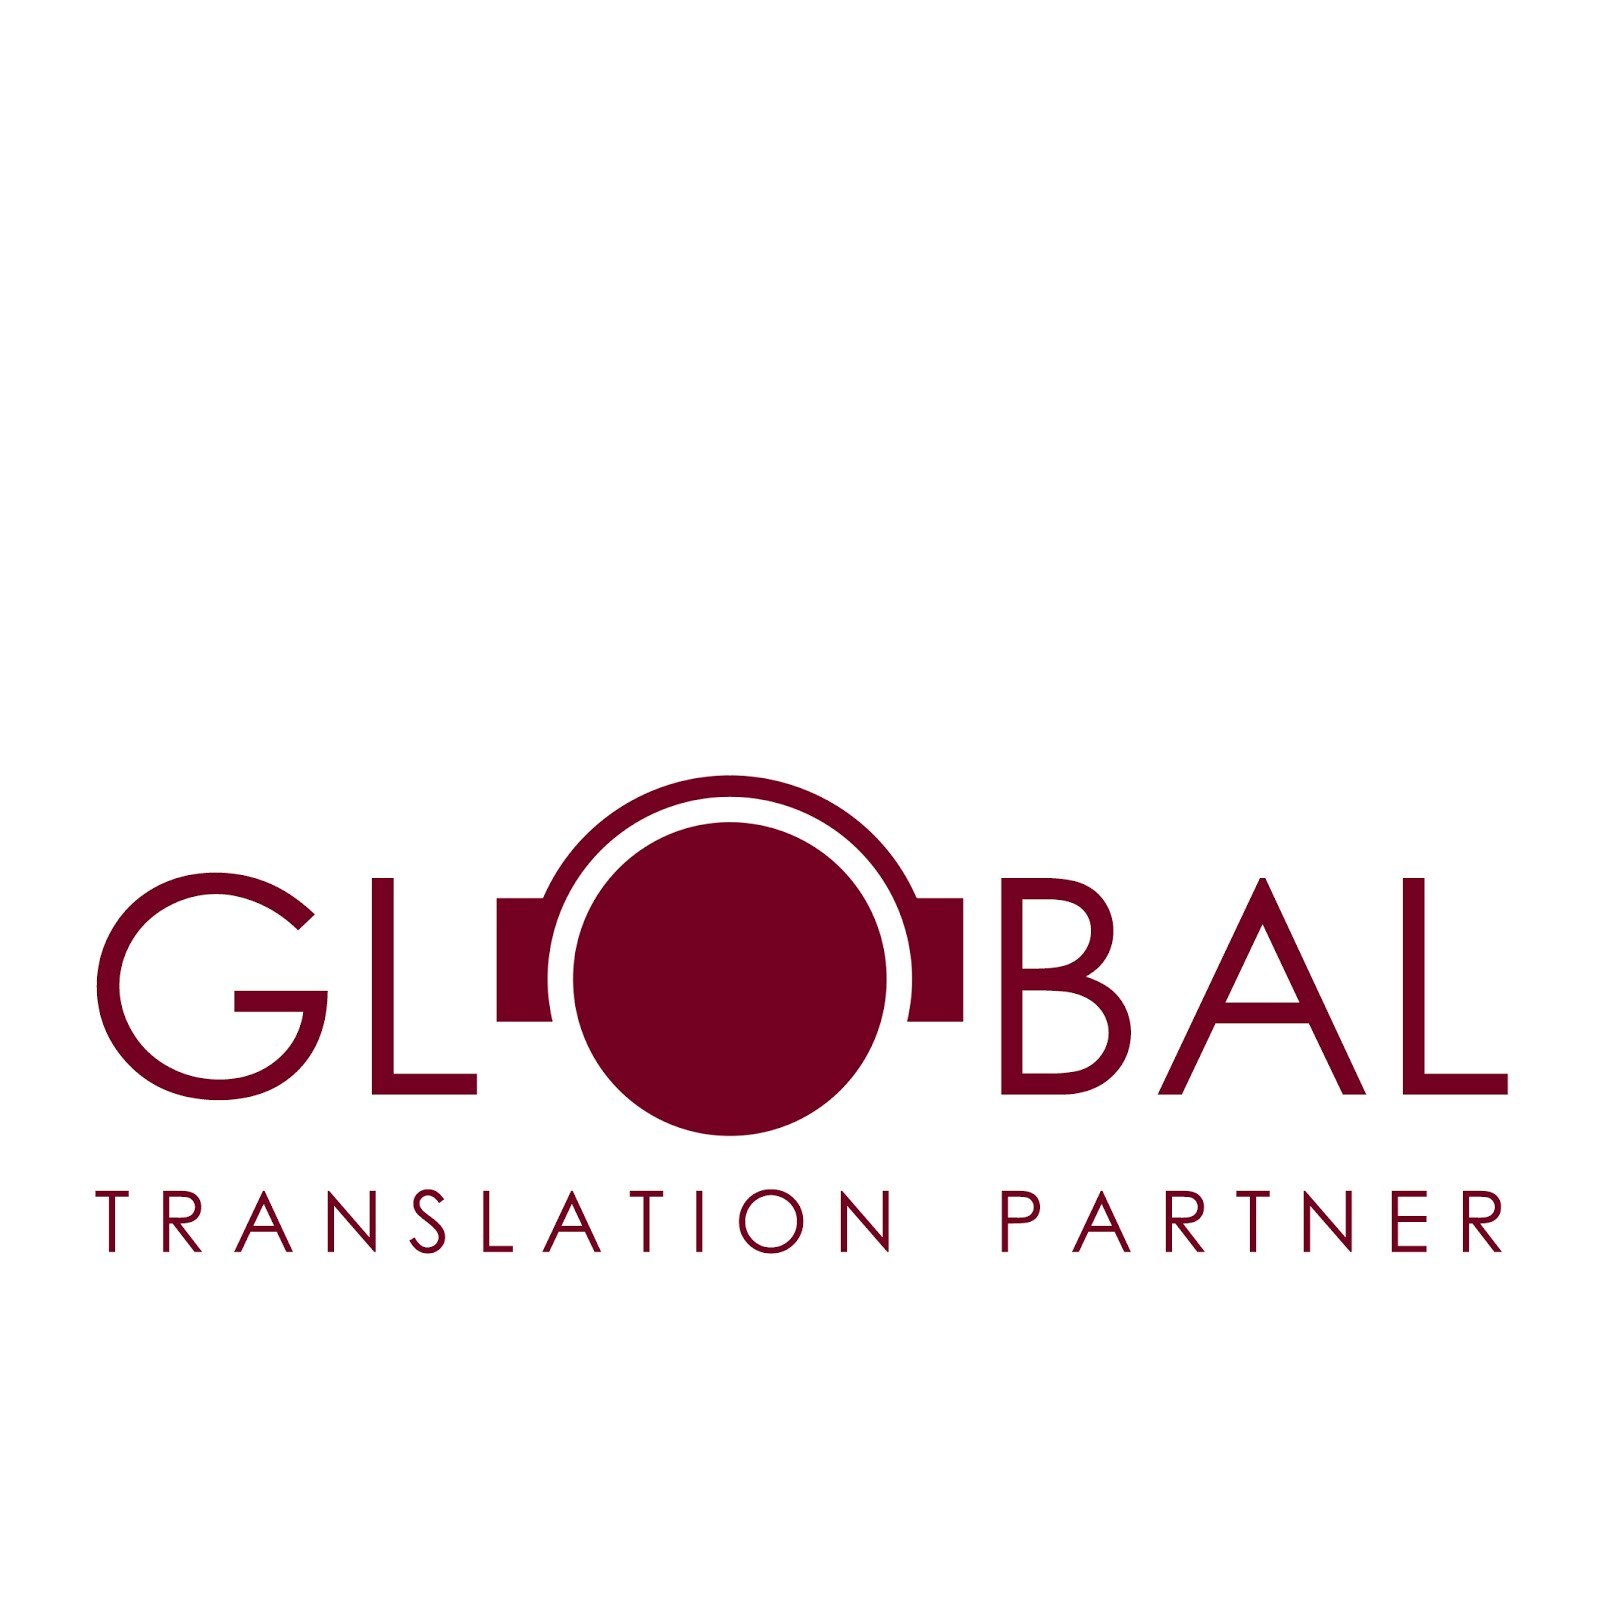 Global Translation Partner